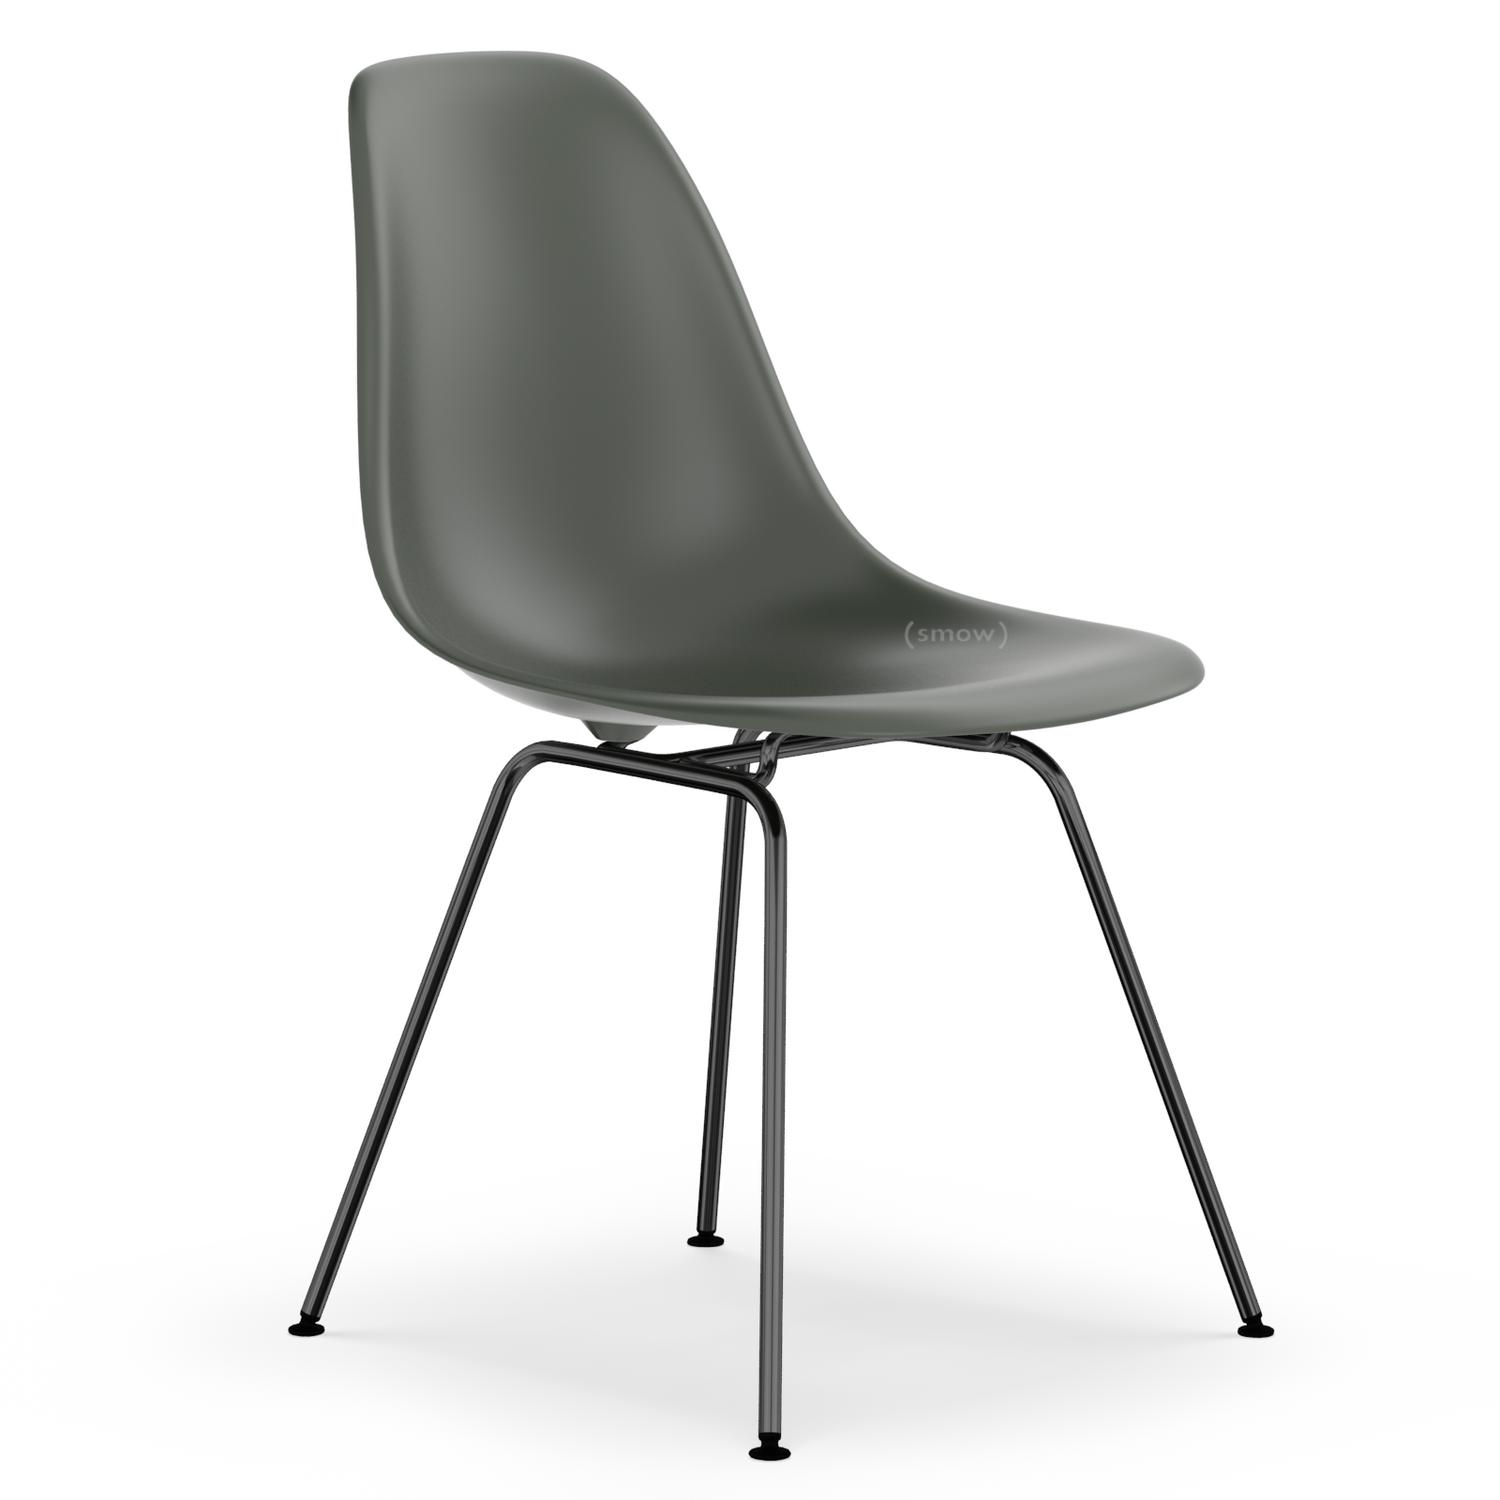 vitra eames plastic side chair dsx basalt grey without upholstery without upholstery lower. Black Bedroom Furniture Sets. Home Design Ideas